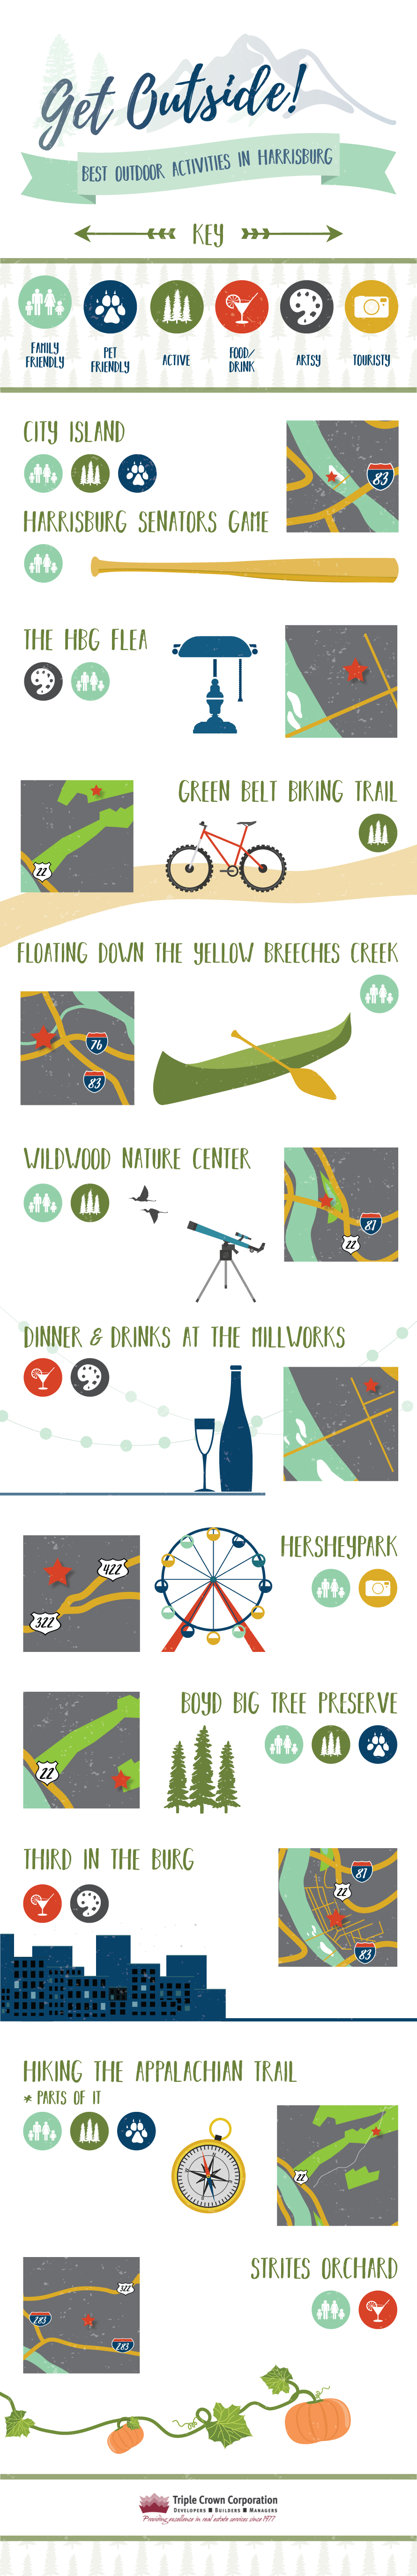 Best Outdoor Activities in Harrisburg Infographic